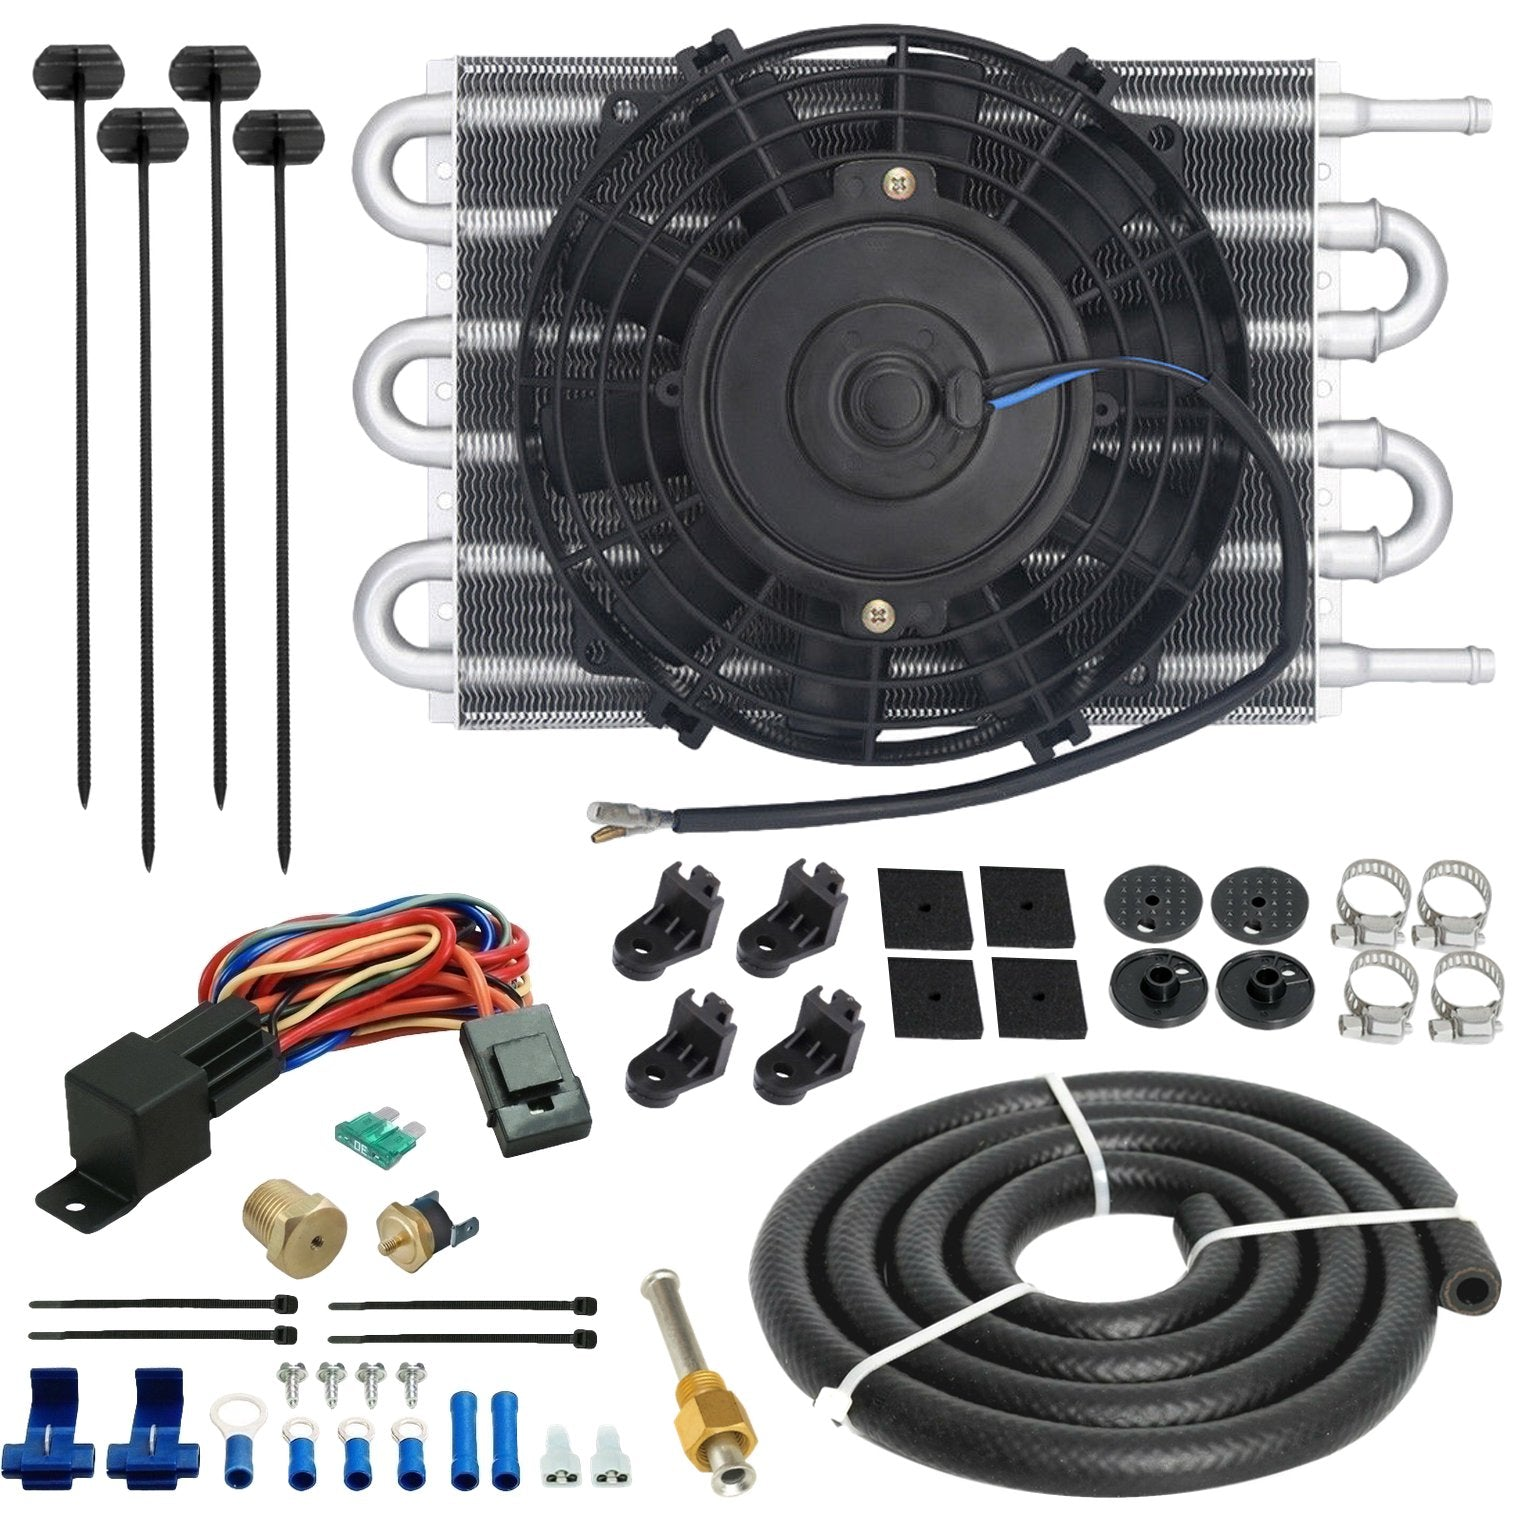 "6 Row Engine Transmission Oil Cooler 6"" Inch Electric Fan Thread-In Thermostat Switch Kit-Oil Cooler-American Volt-6AN-1/8"" NPT-140'F On - 125'F Off-American Volt"